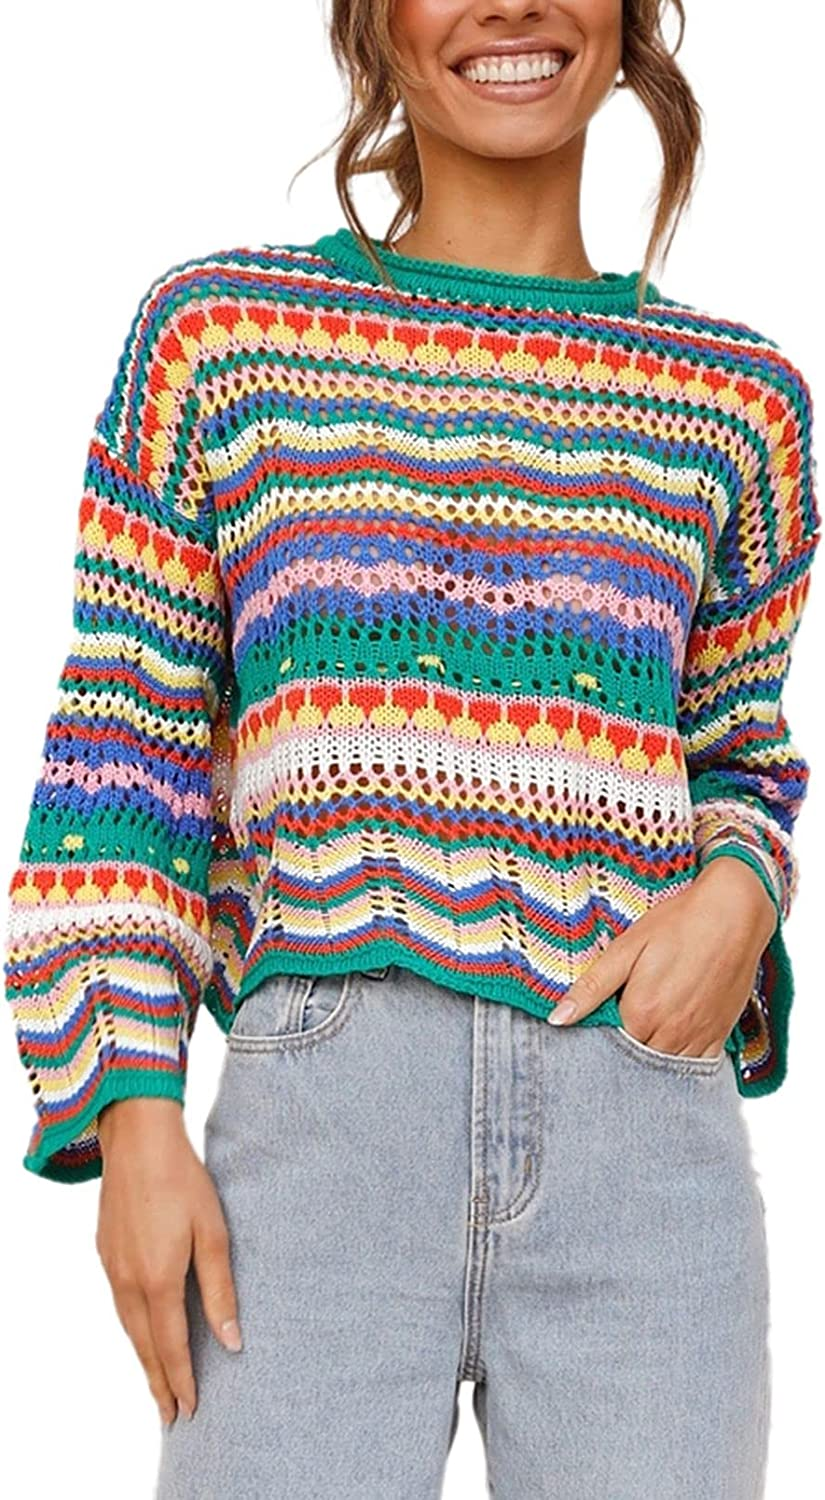 HAPCOPE Women's Striped Oversized Pullover Sweaters Bell Bottom Sleeve Crewneck Knit Jumper Crop Tops